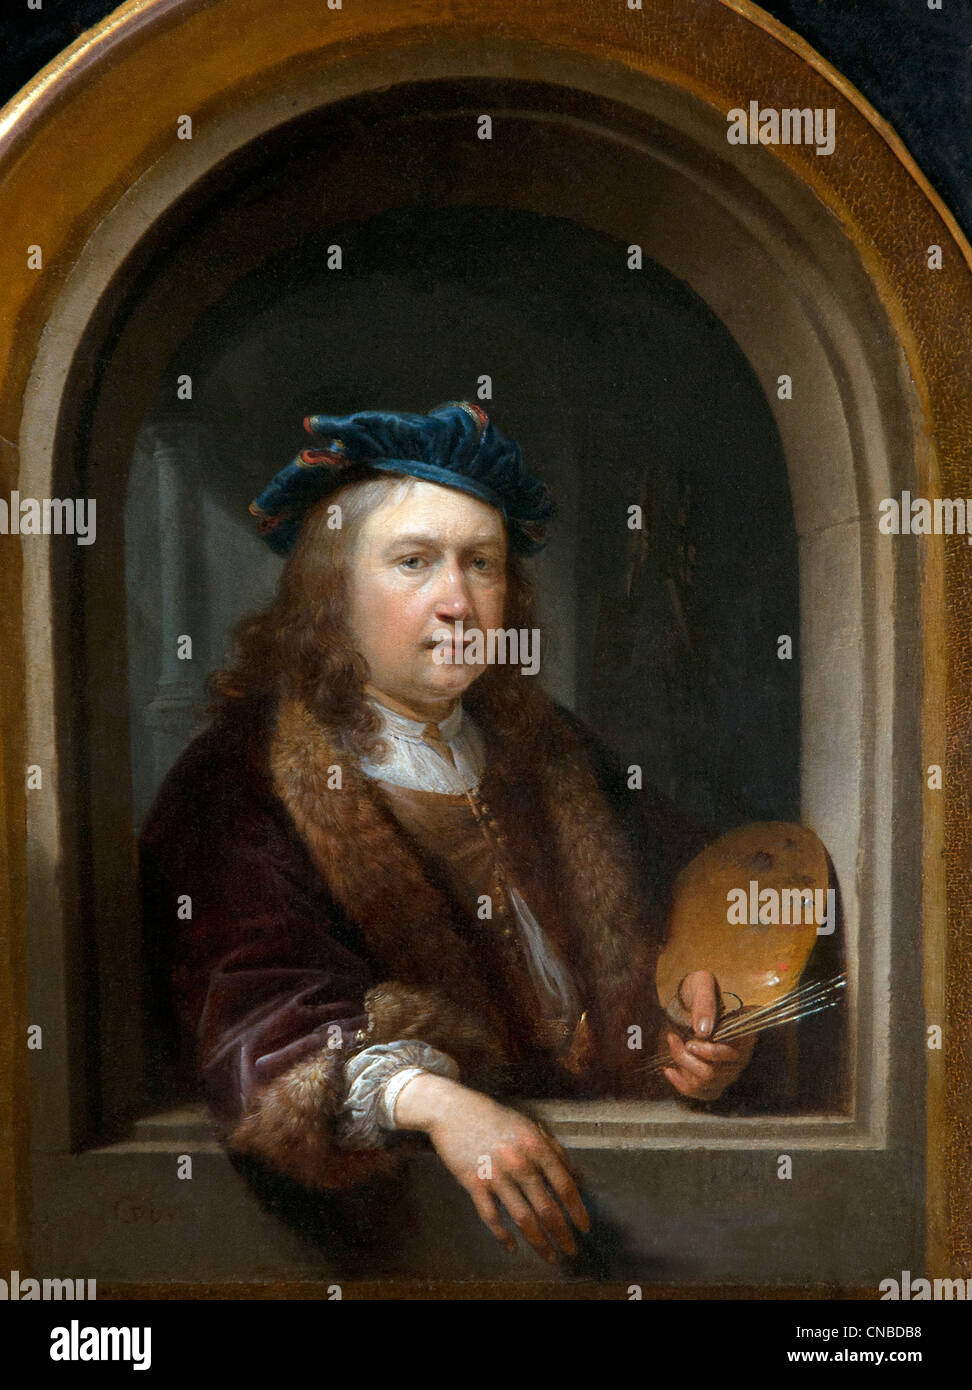 Self-portrait with palette dans un nicheGerard DOU 1613 - 1675 Pays-Bas Néerlandais Photo Stock